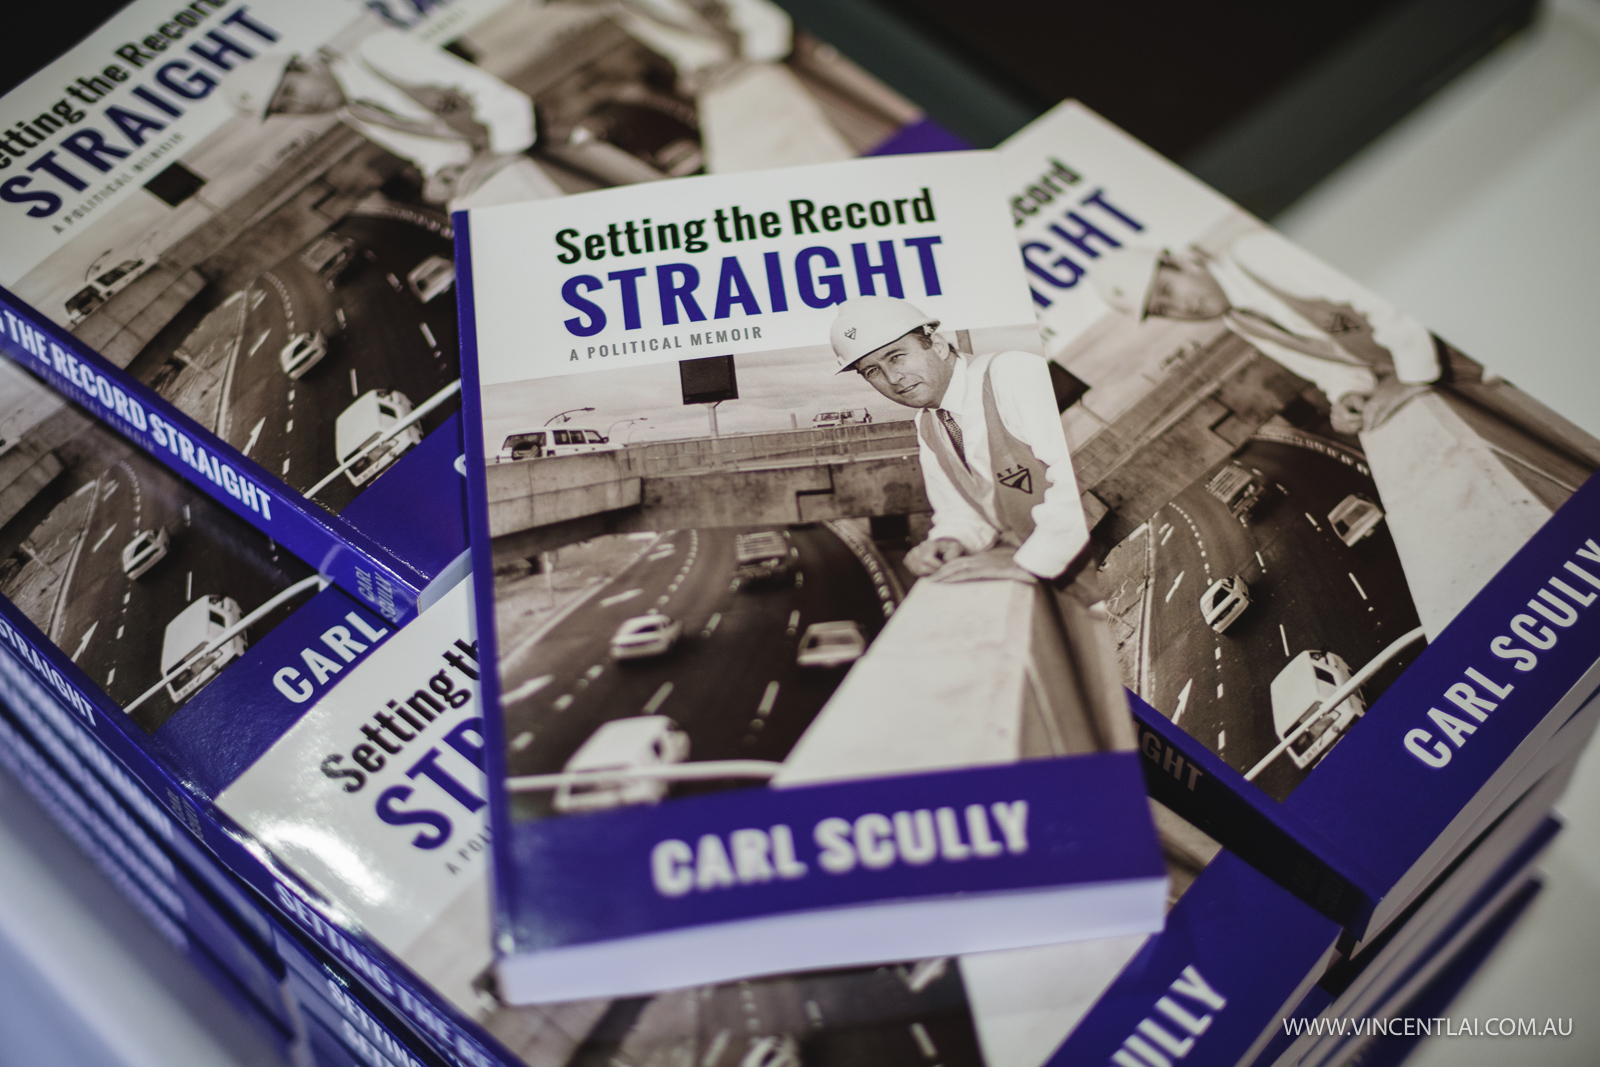 Carl Scully Setting the Record Straight A Political Memoir Book Launch